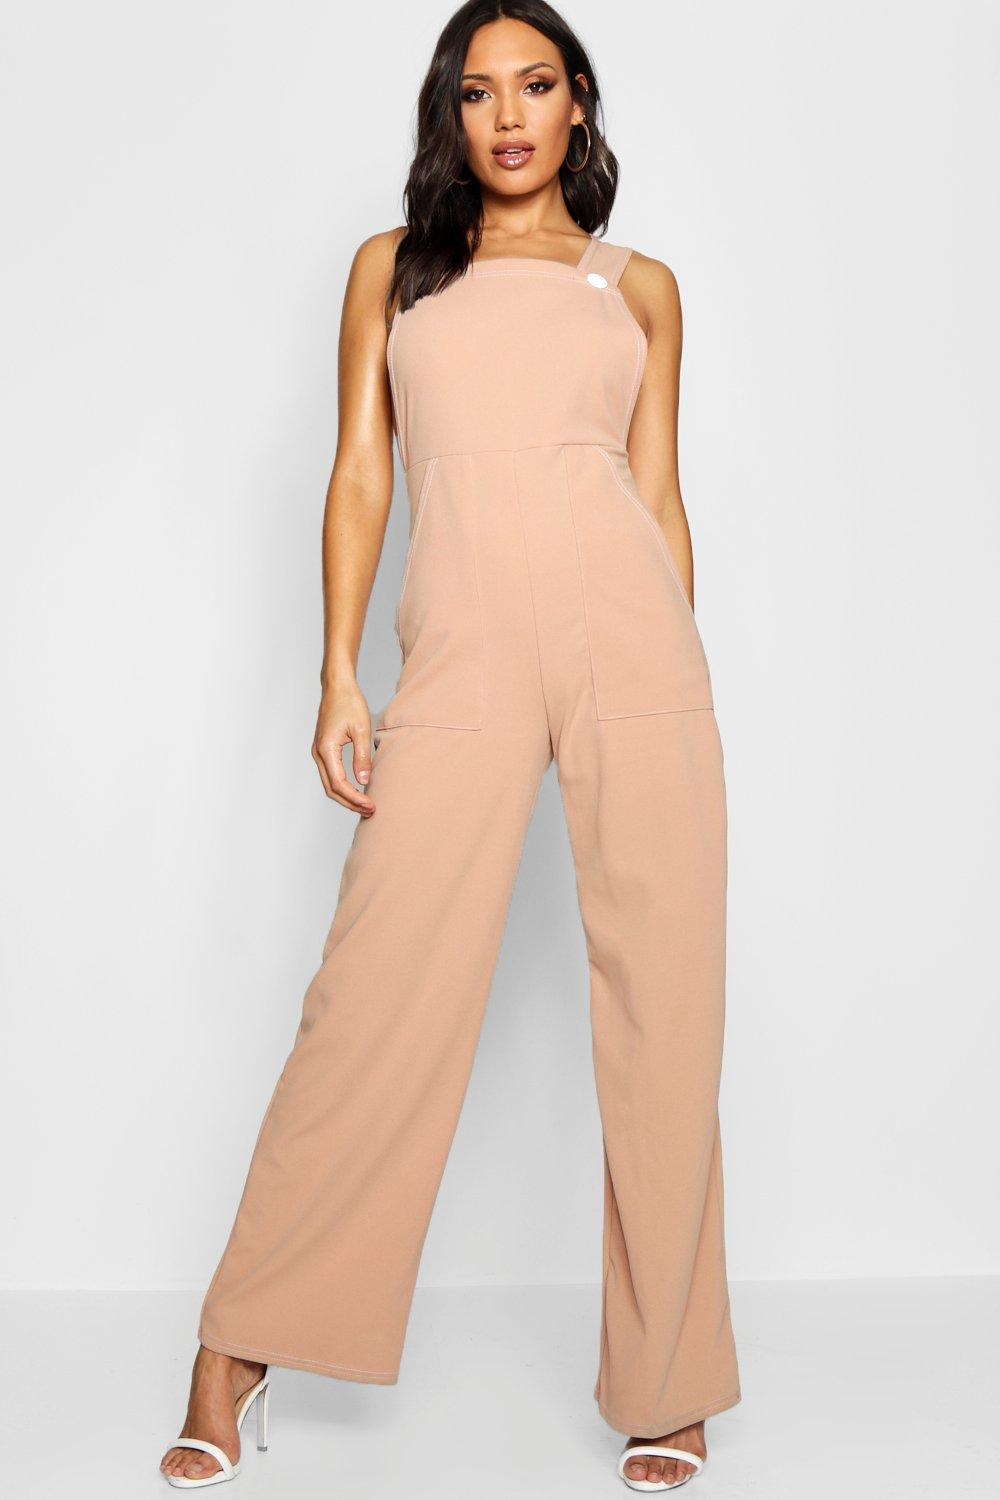 6c8dba207cd Contrast Stitch Button Detail Jumpsuit. Hover to zoom